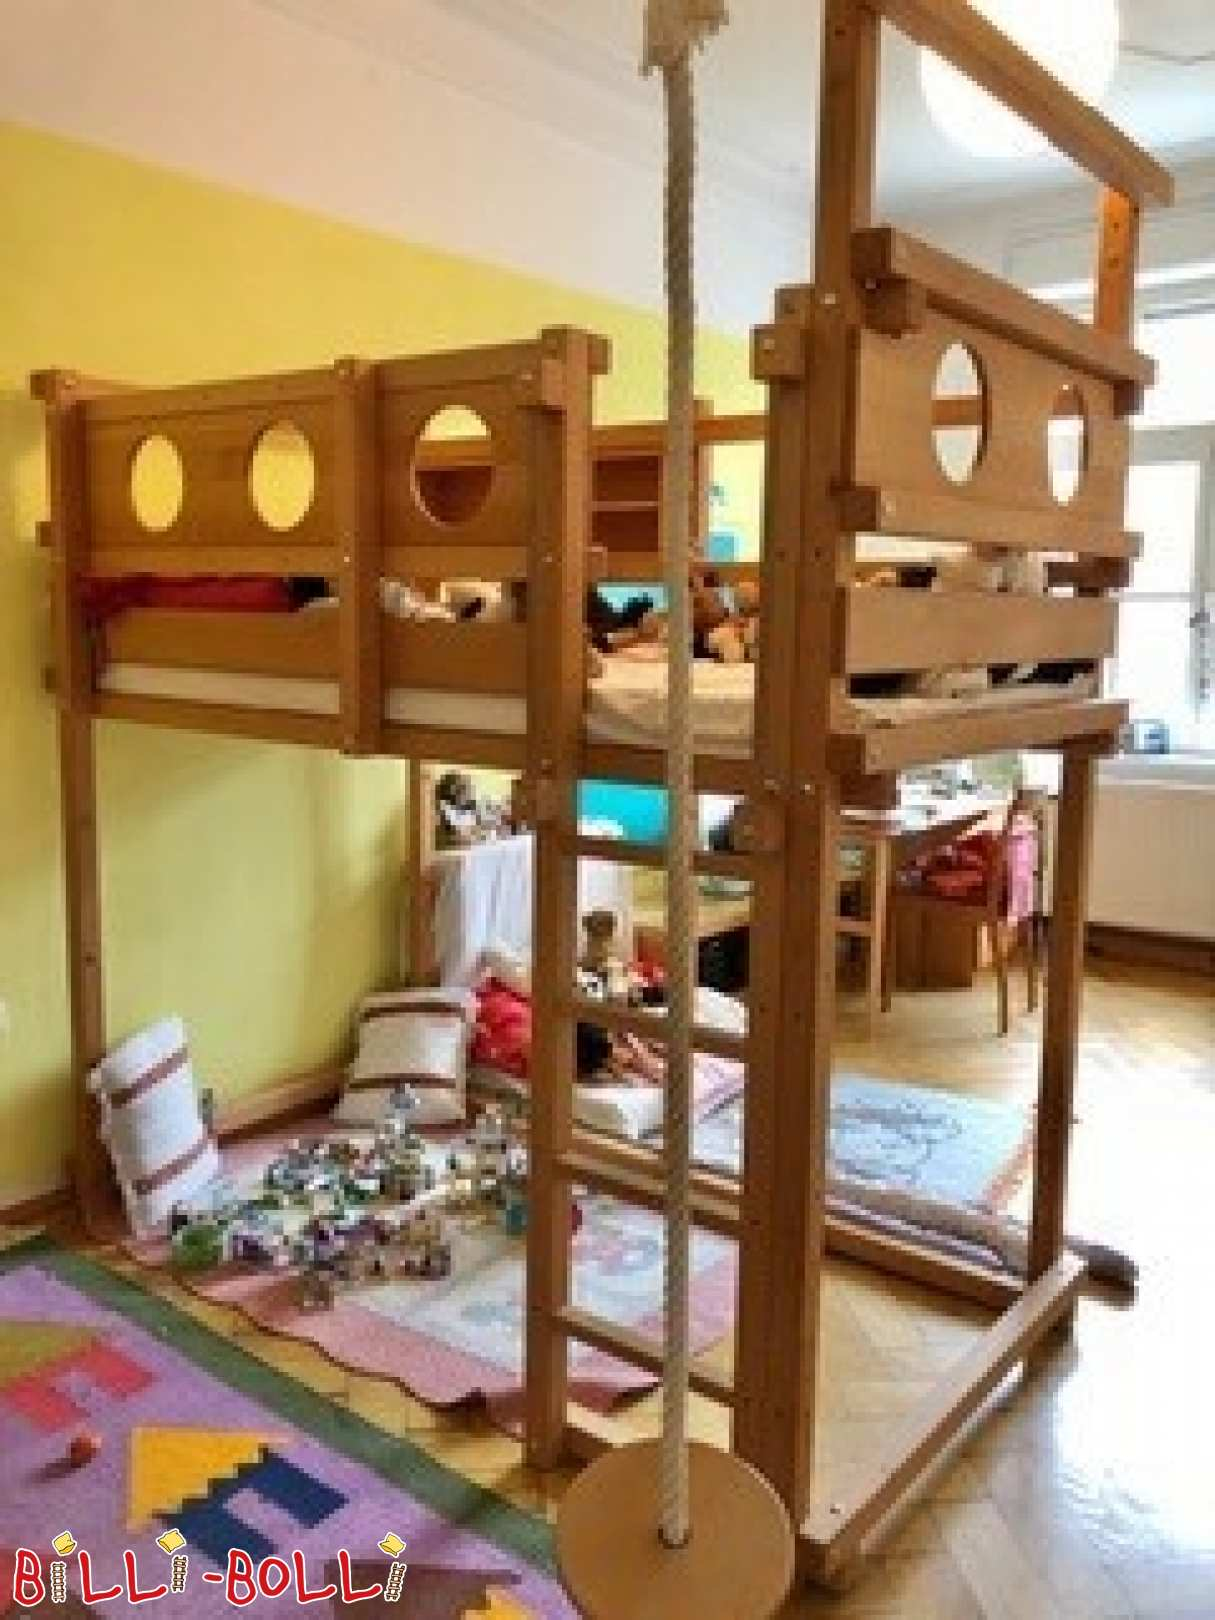 Growing high bed beech - oiled-waxed - 100x200cm in Munich (second hand loft bed)